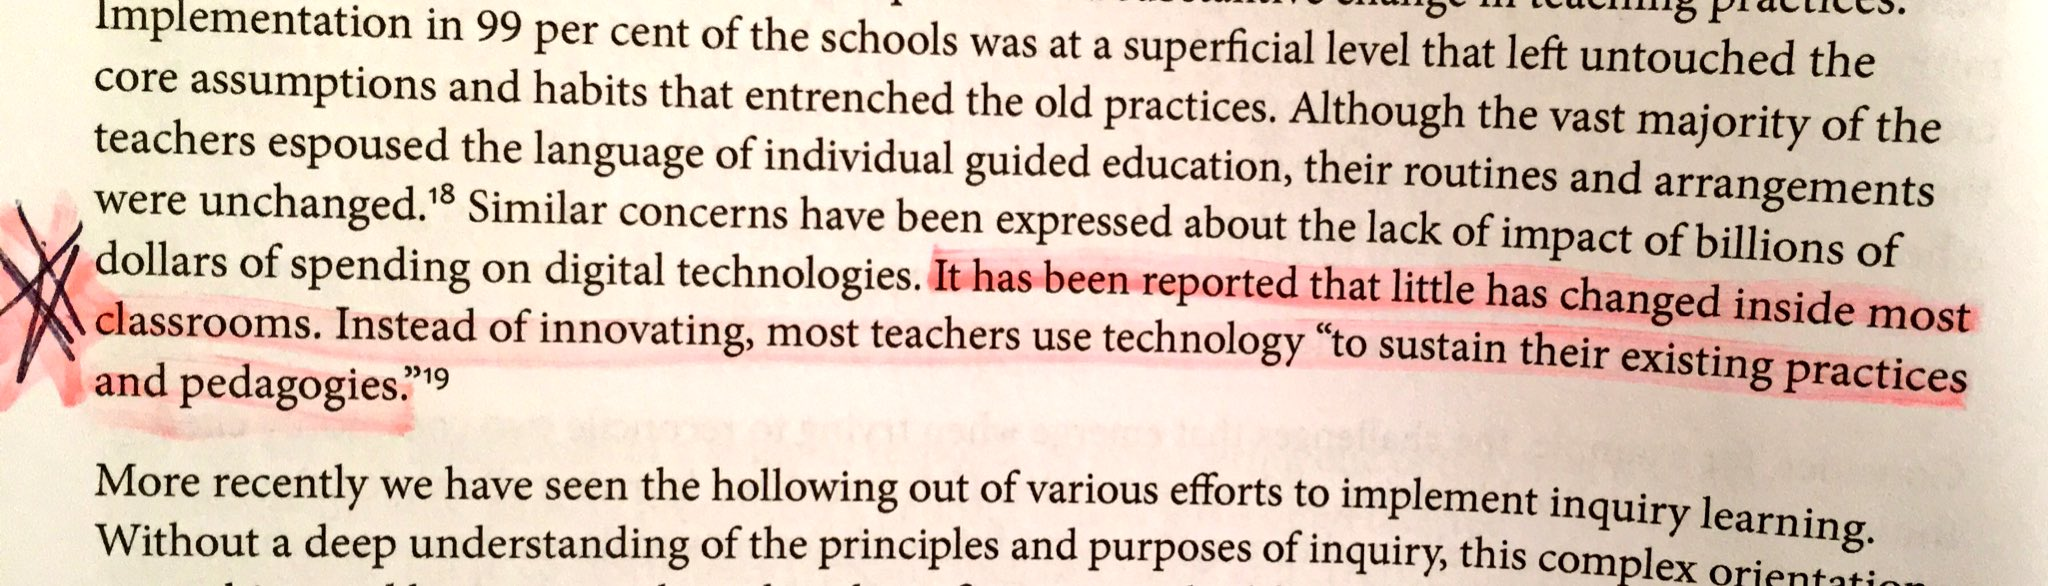 #SAMR- using new technology to support told practice. Superficial 21st Century Classrooms #ThinkingClassrooms @ggininewman @TC2thinks #sgdsb https://t.co/vcgZfigyNu